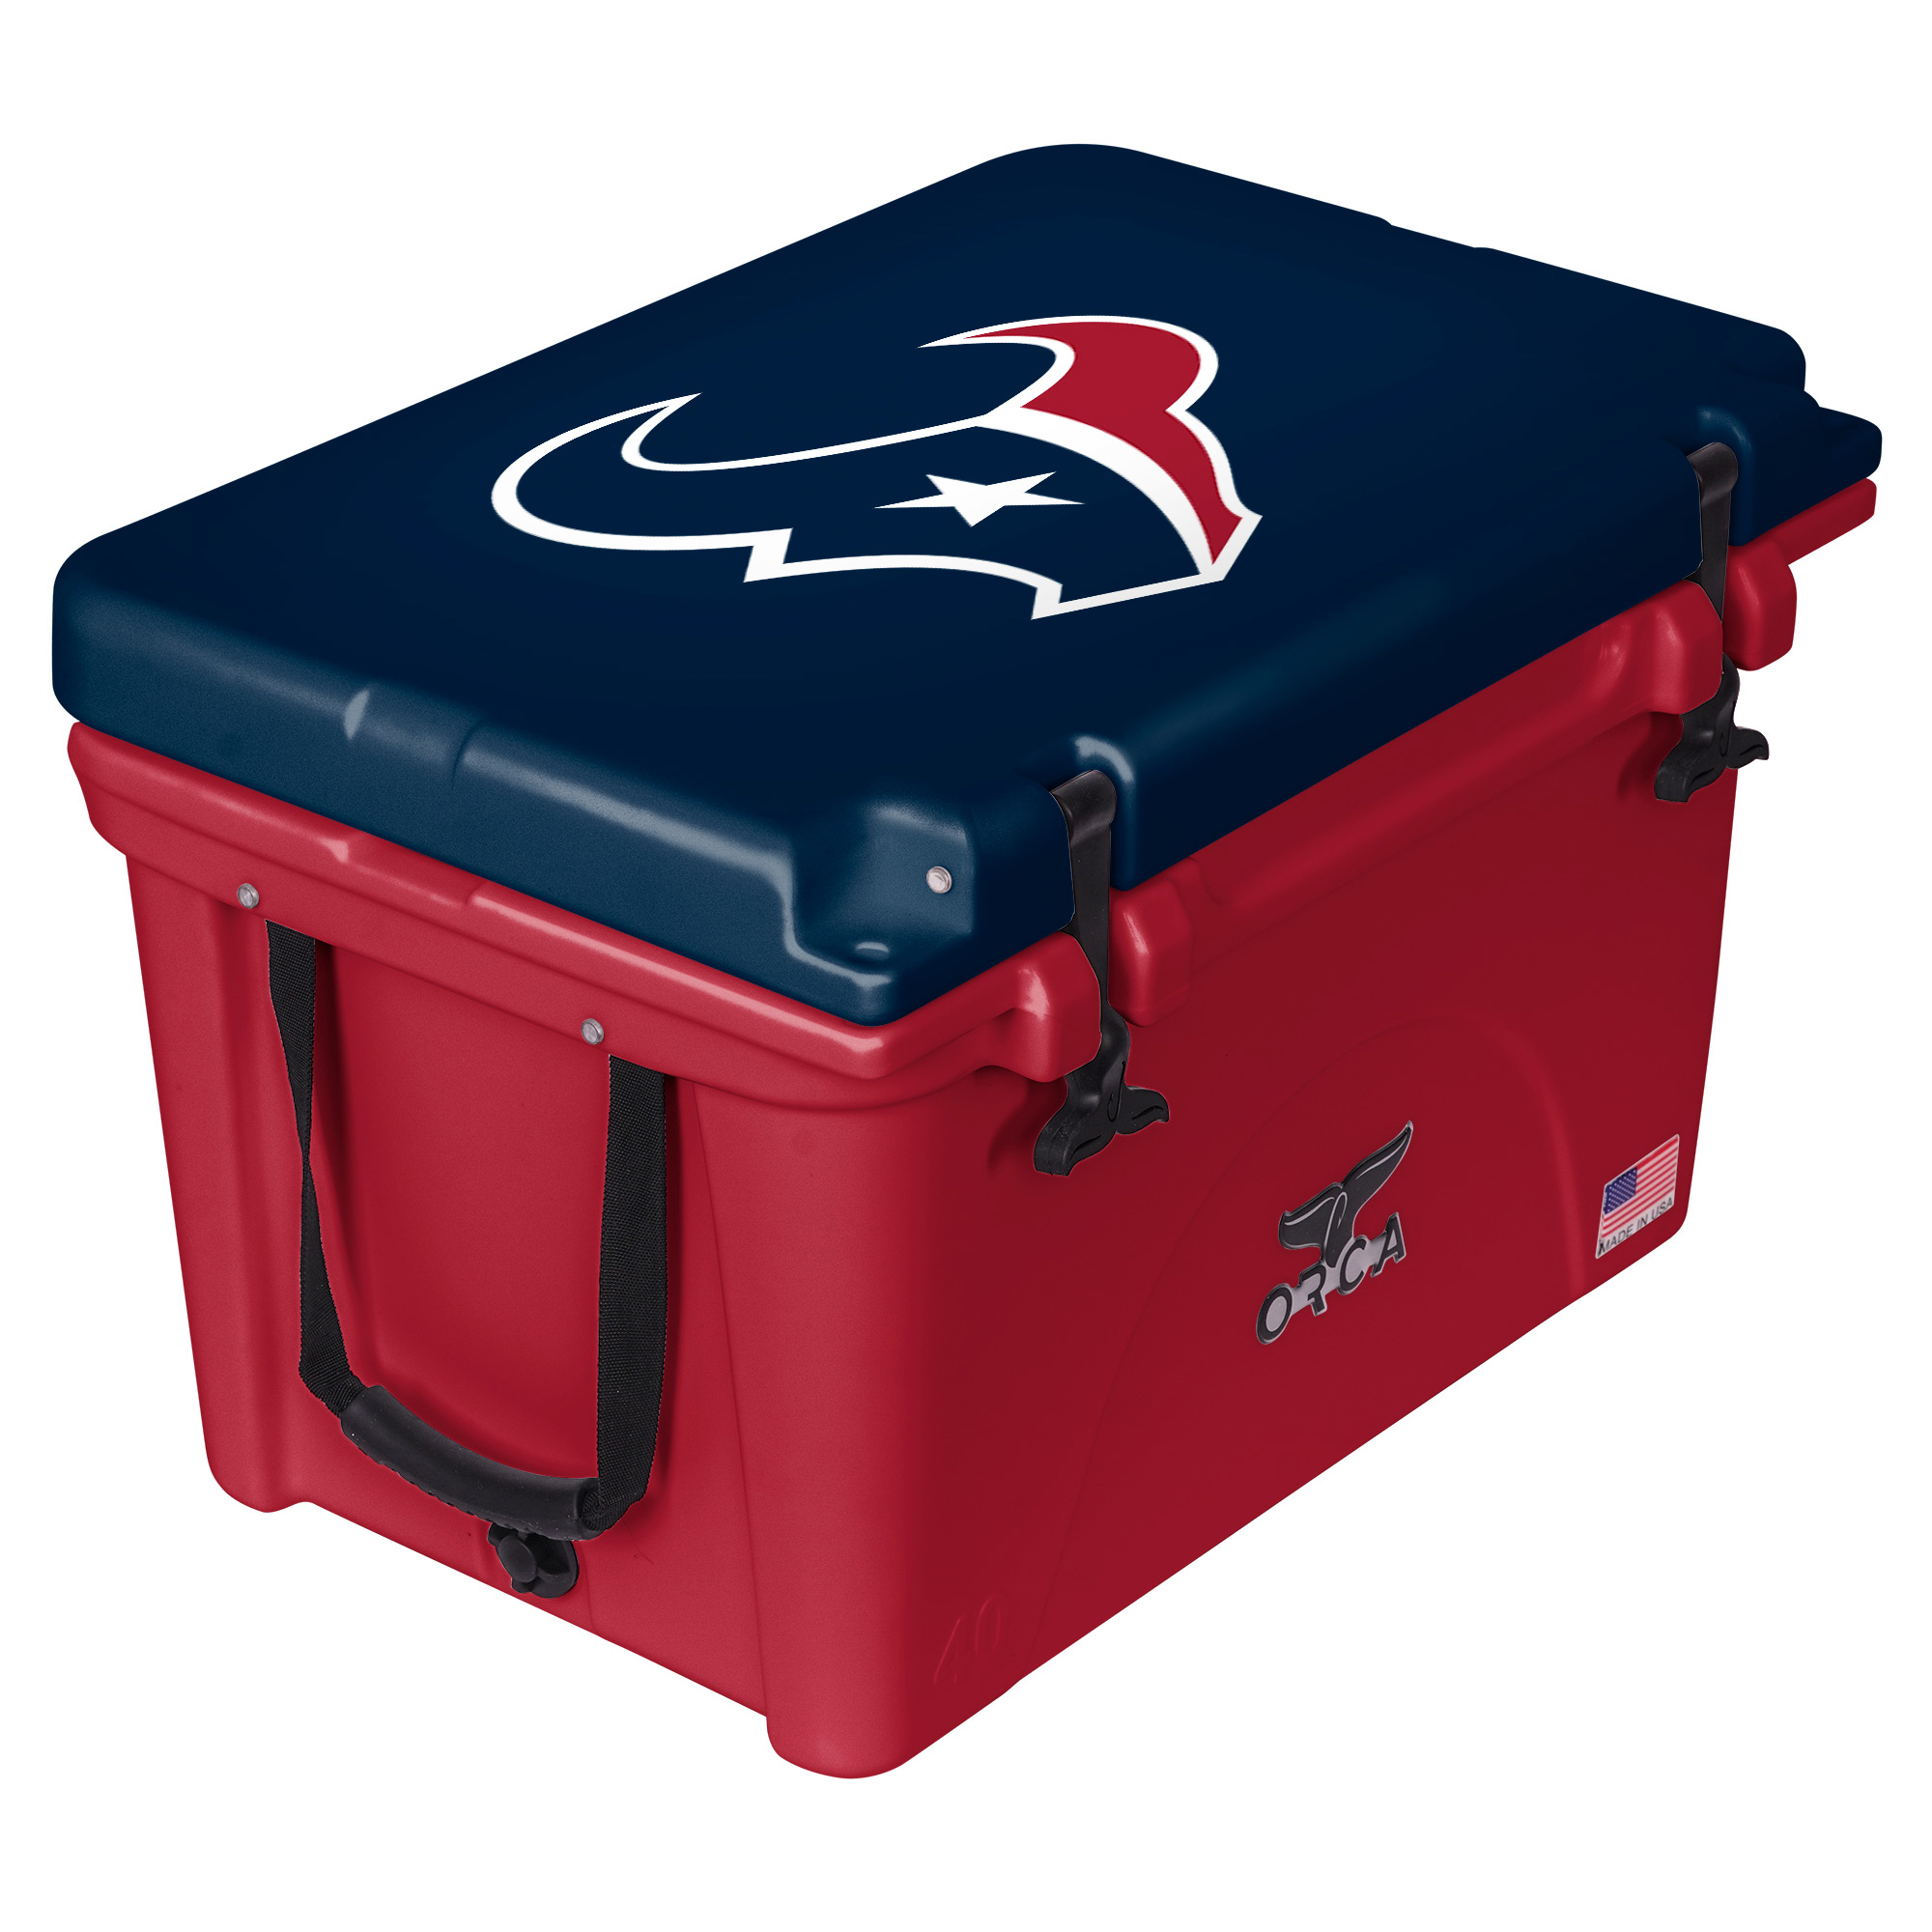 Houston Texans ORCA 40-Quart Hard-Sided Cooler - Red/Navy - No Size